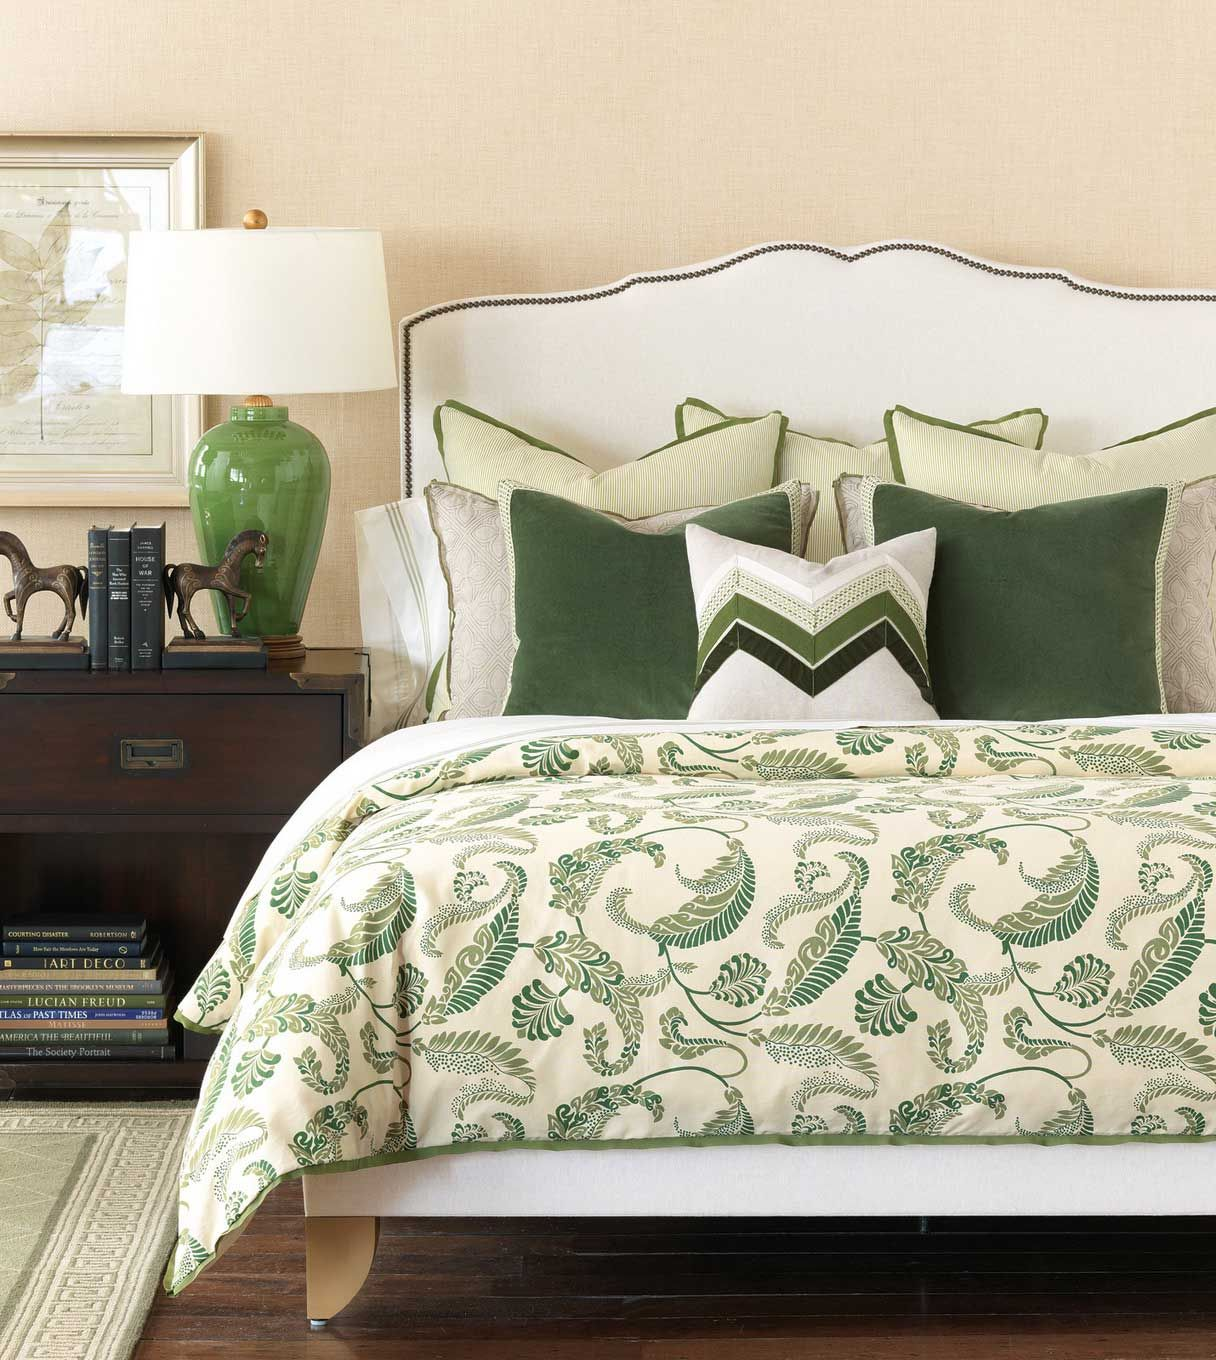 Arranging Throw Pillows On Bed : Home Design and Interior Design Gallery of Awesome Floral White Cream Green Decorative Pillows ...